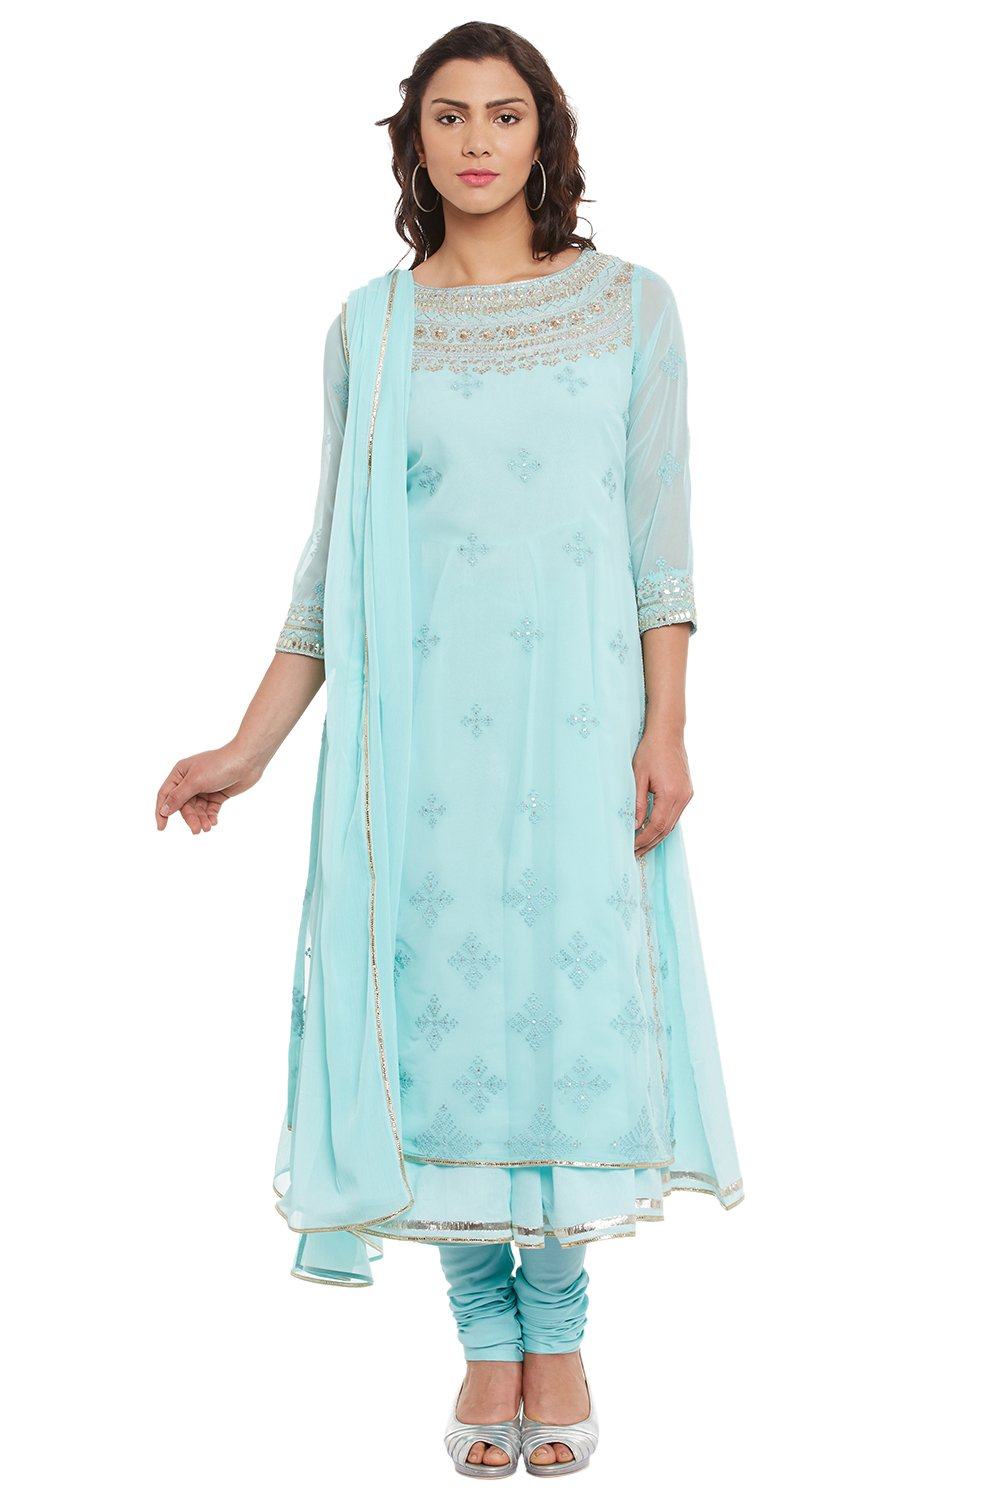 BIBA Women's Sky Blue Poly Cotton Kalidar Suit Set 36